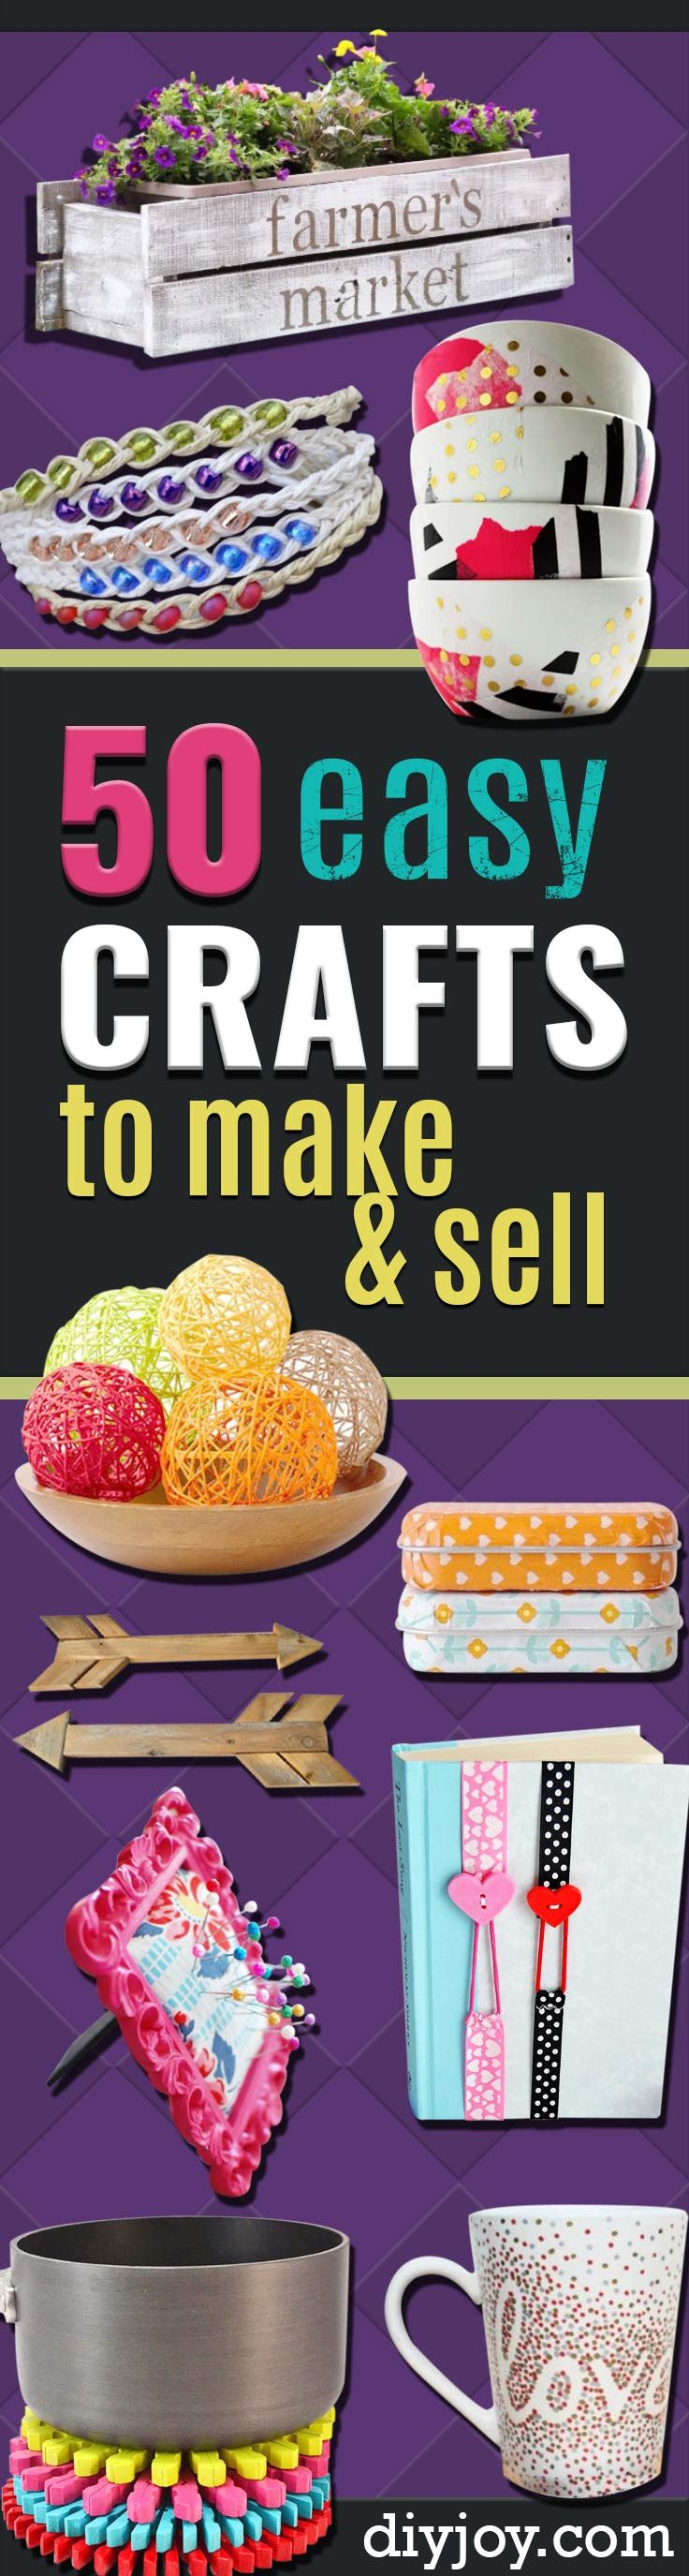 50 easy crafts to make and sell homemade crafts craft